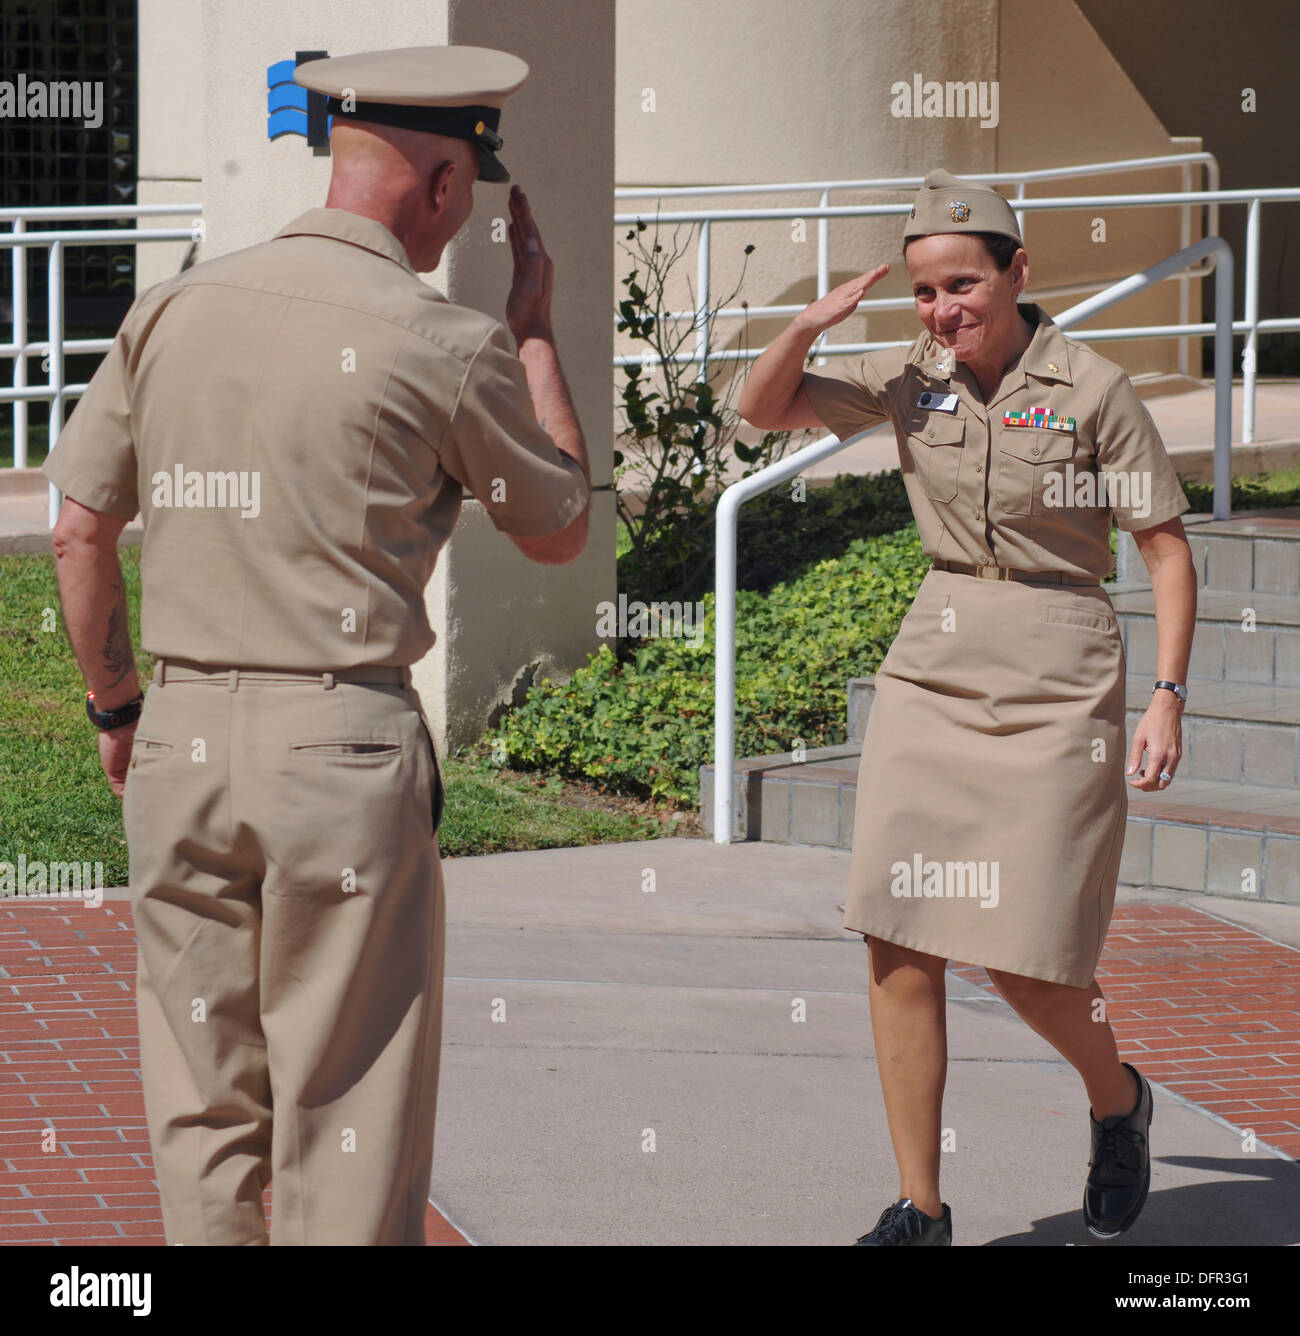 SAN DIEGO (Sept. 27, 2013) Cmdr. Cindy Murray, a senior nursing officer assigned to the Military Health Center at Naval Medical - Stock Image